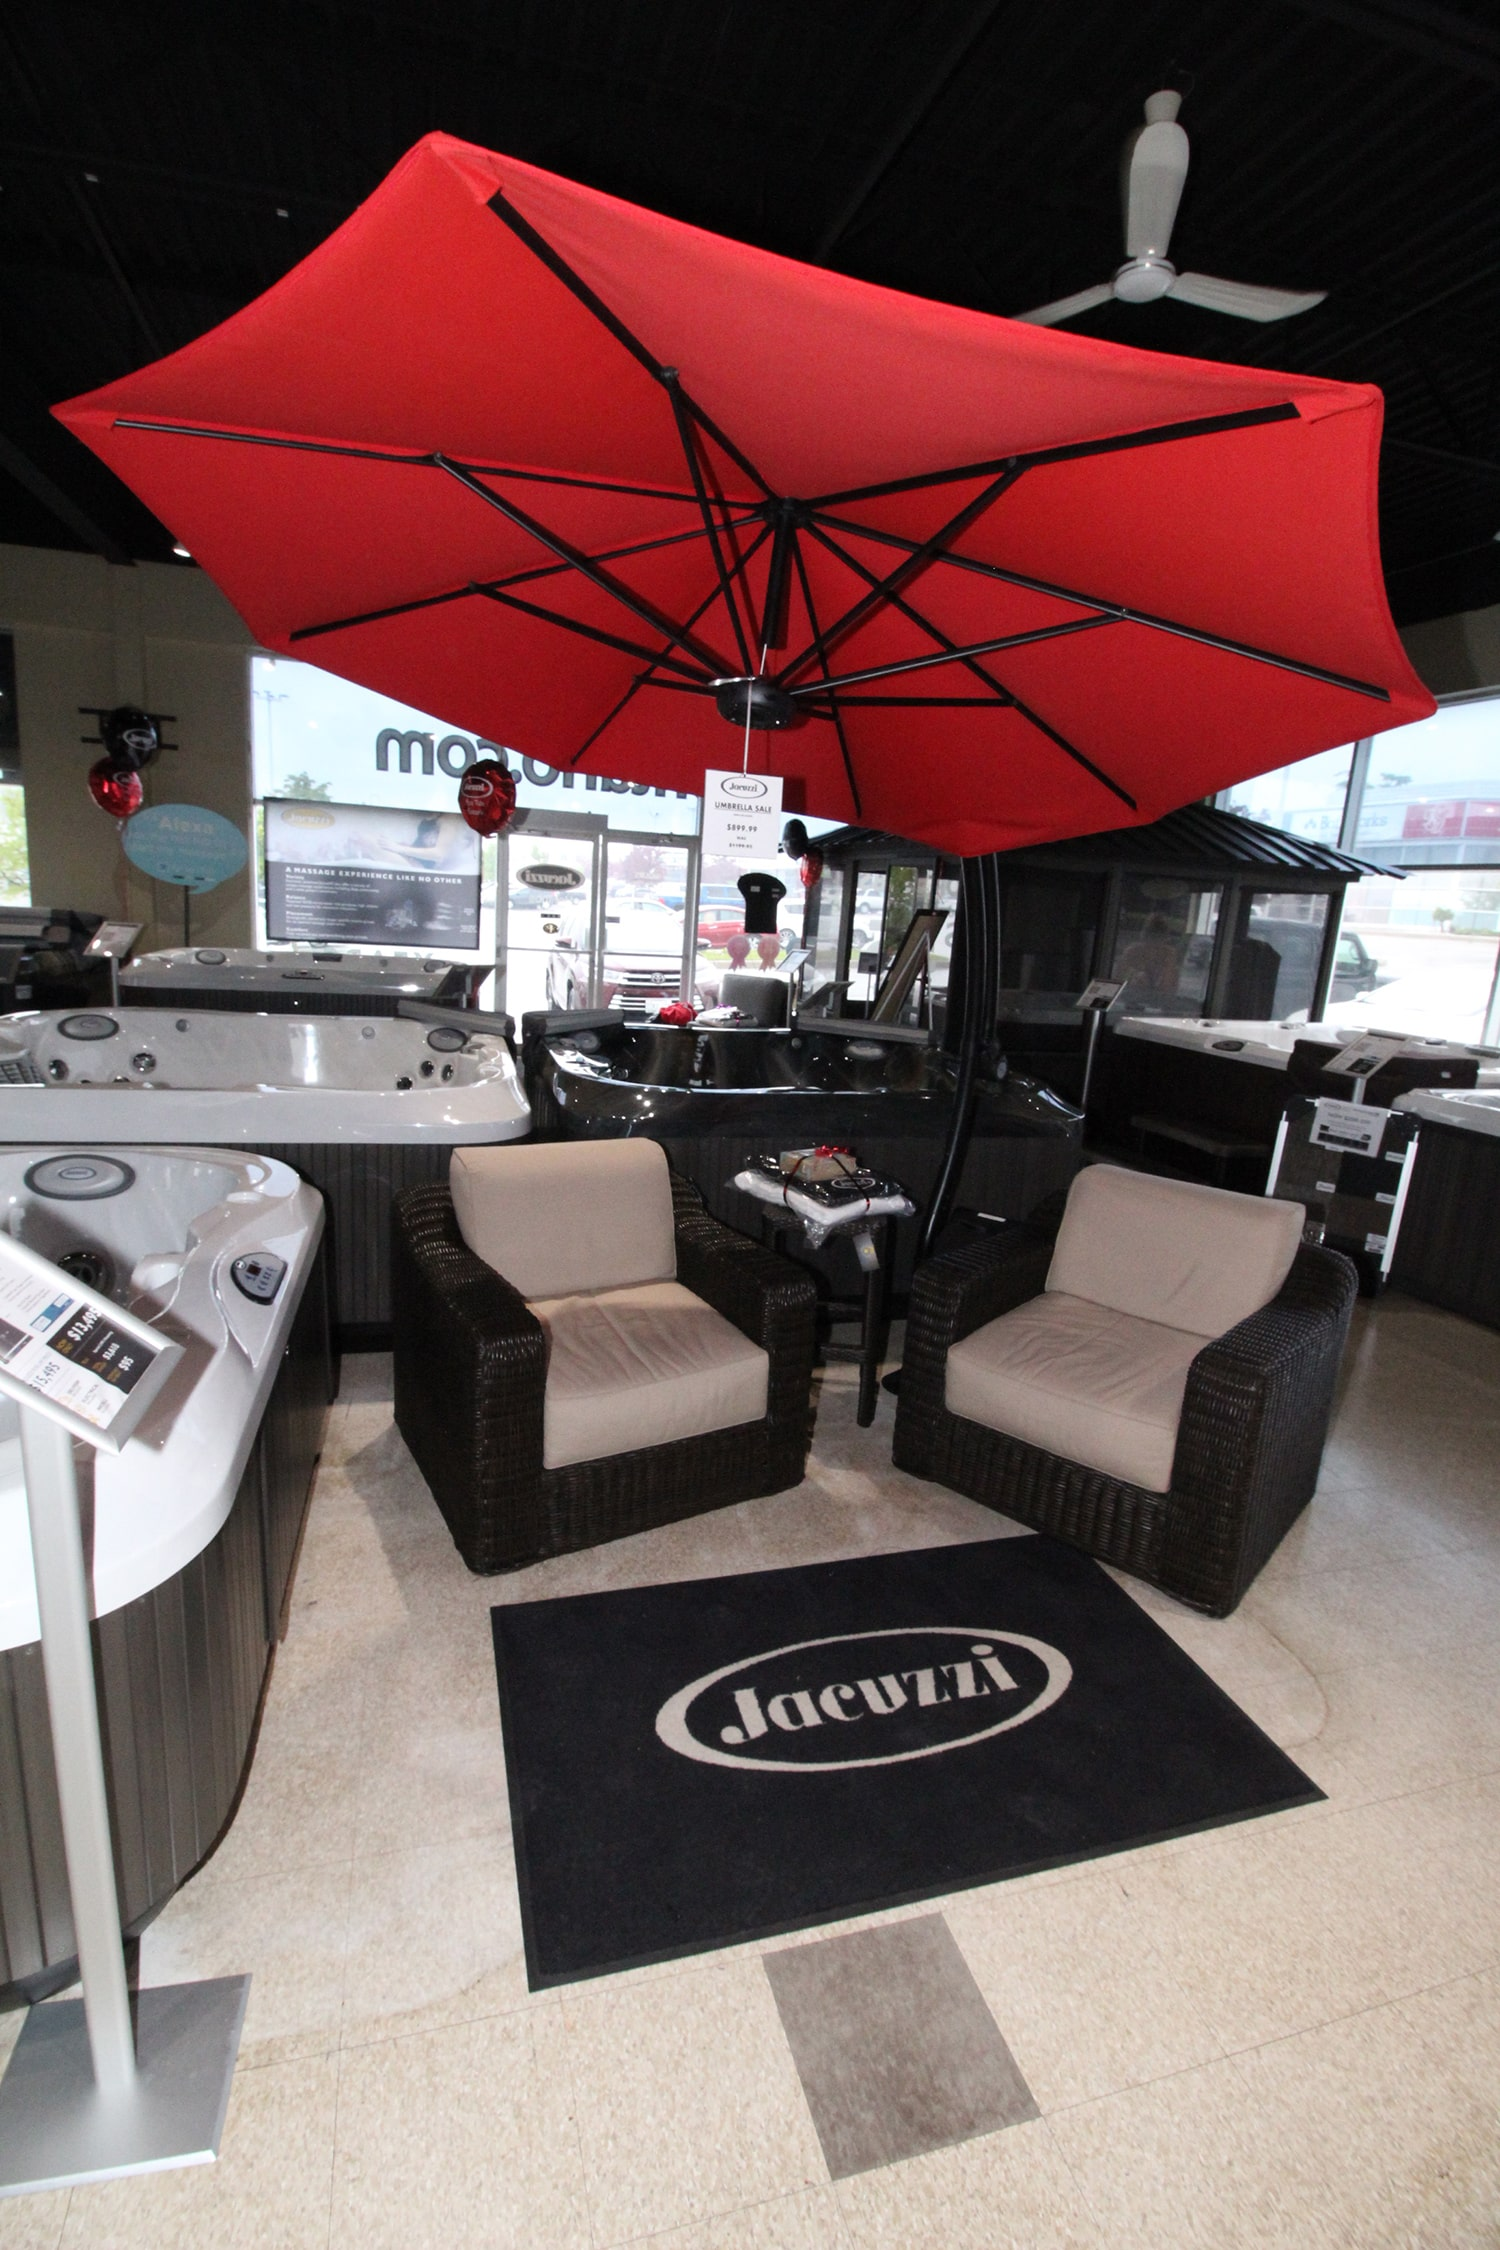 Jacuzzi Barrie Outdoor Furniture Showroom